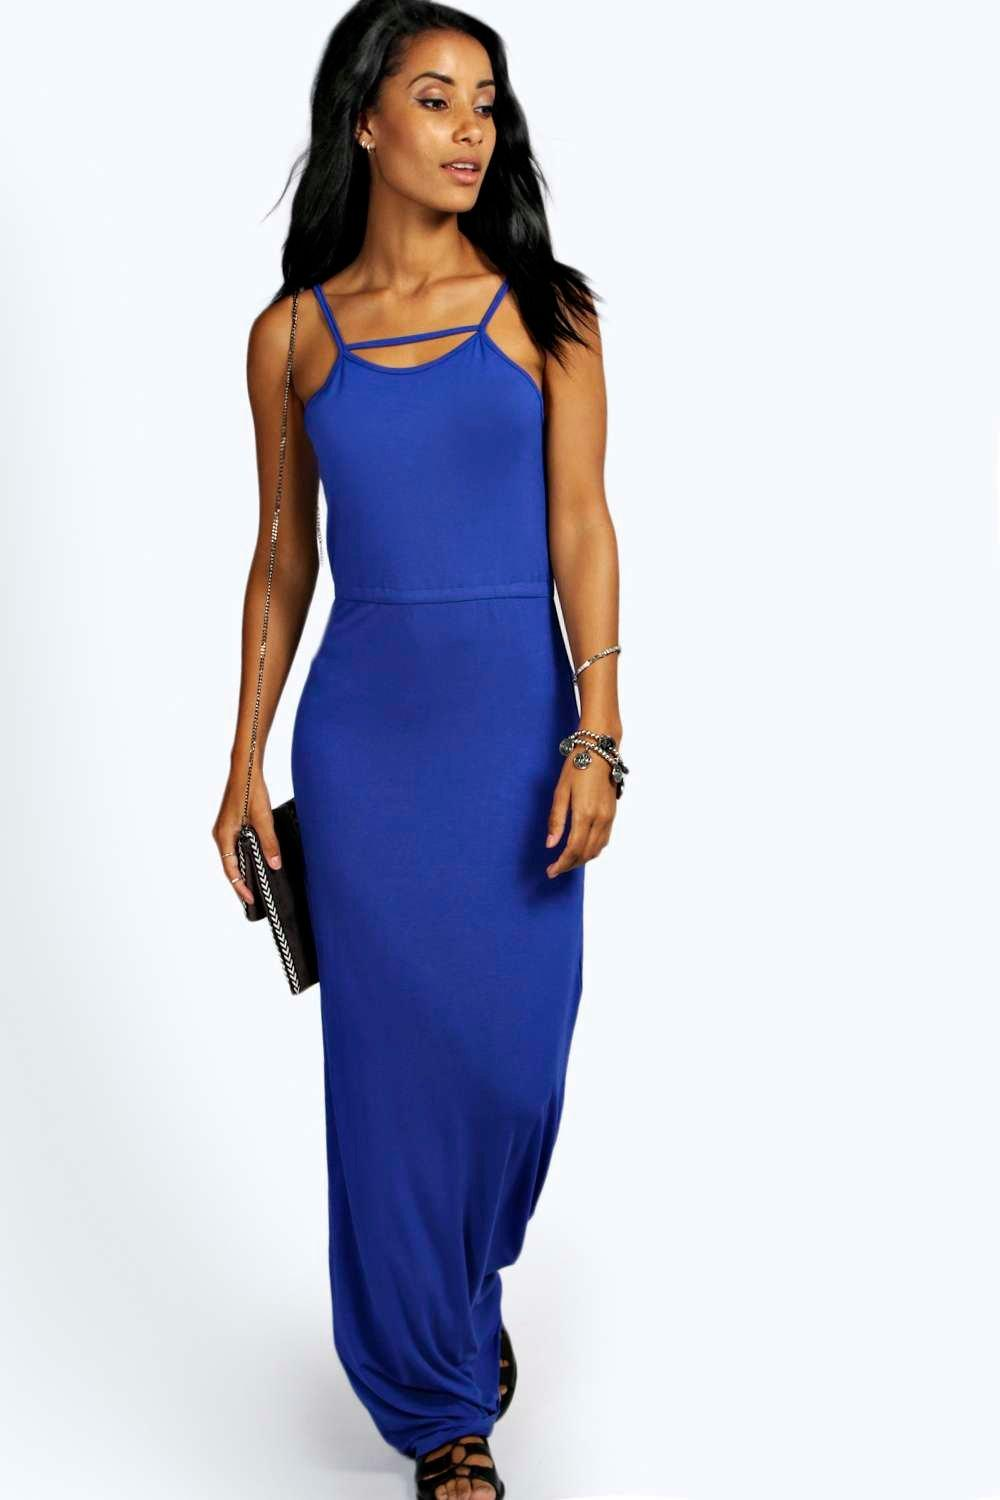 boohoo Khole Back Detail Bagged Over Maxi Dress - cobalt